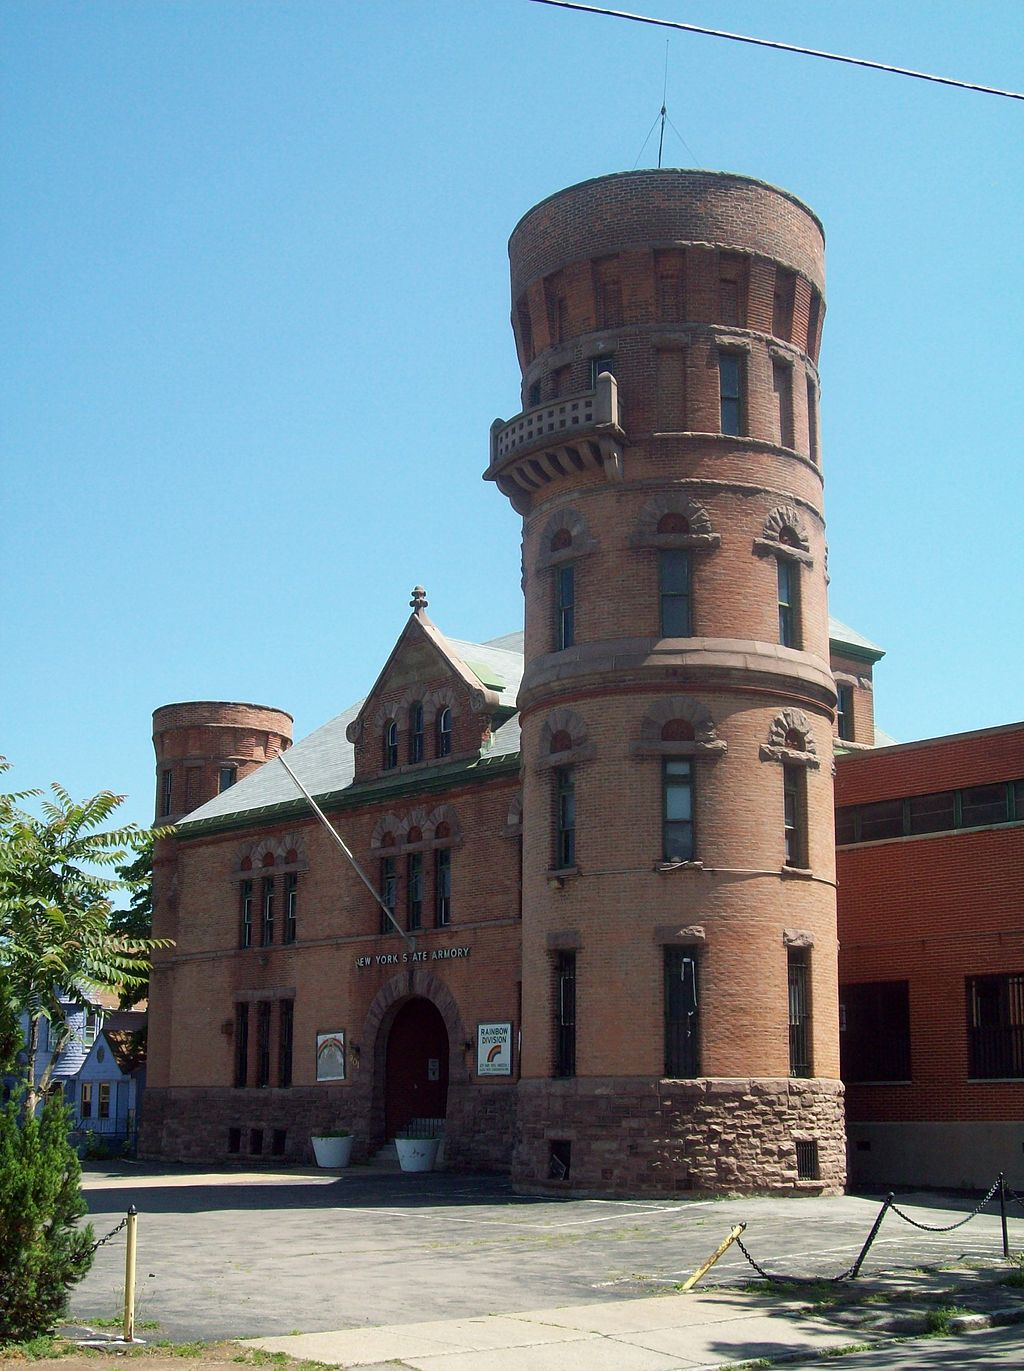 The Niagara Falls Armory was built in 1895.